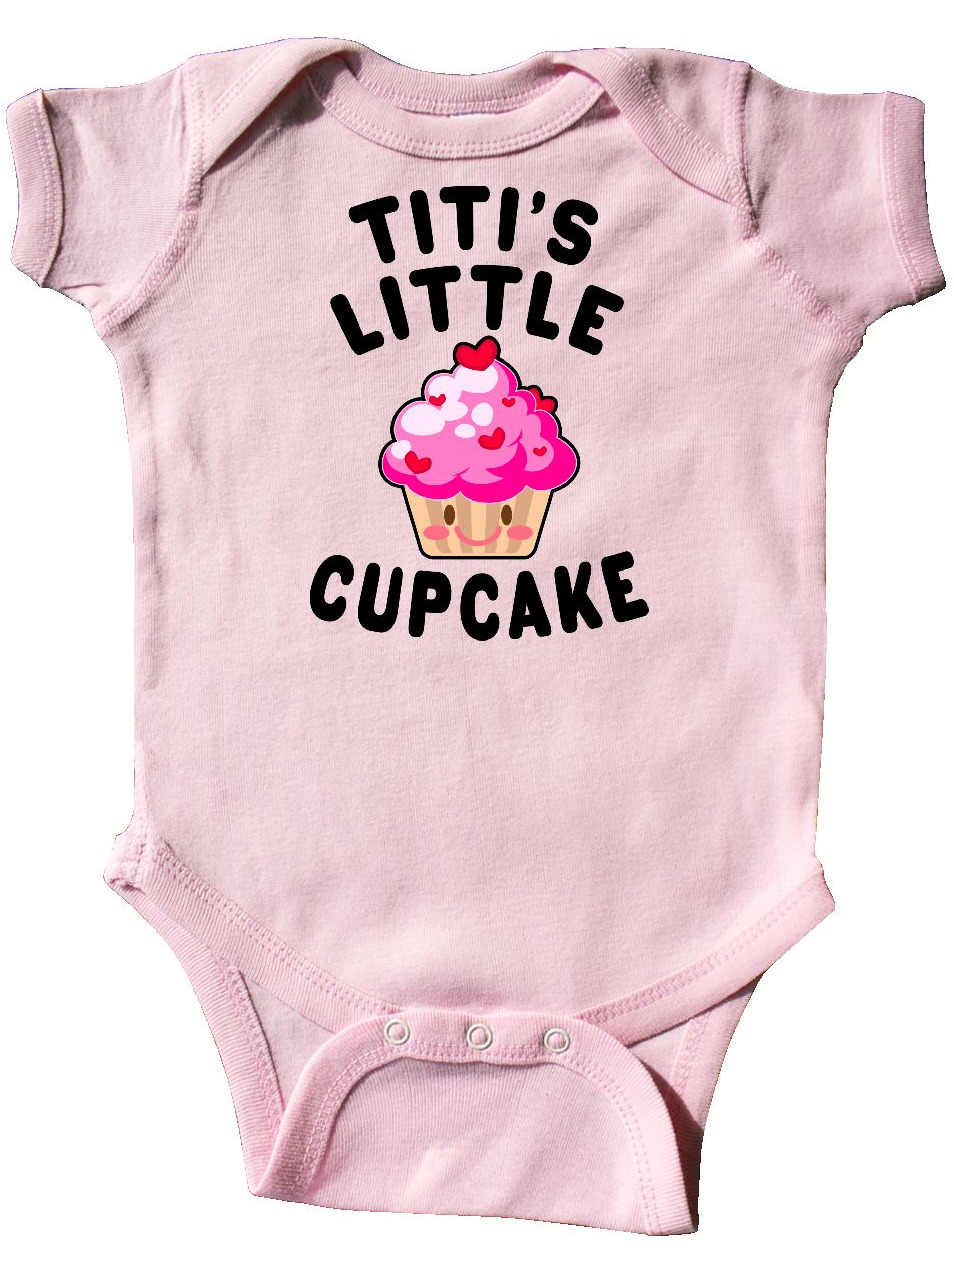 Inktastic Poppys Little Cupcake Baby Bib Food Sweets Cute Toddler Youth Gift